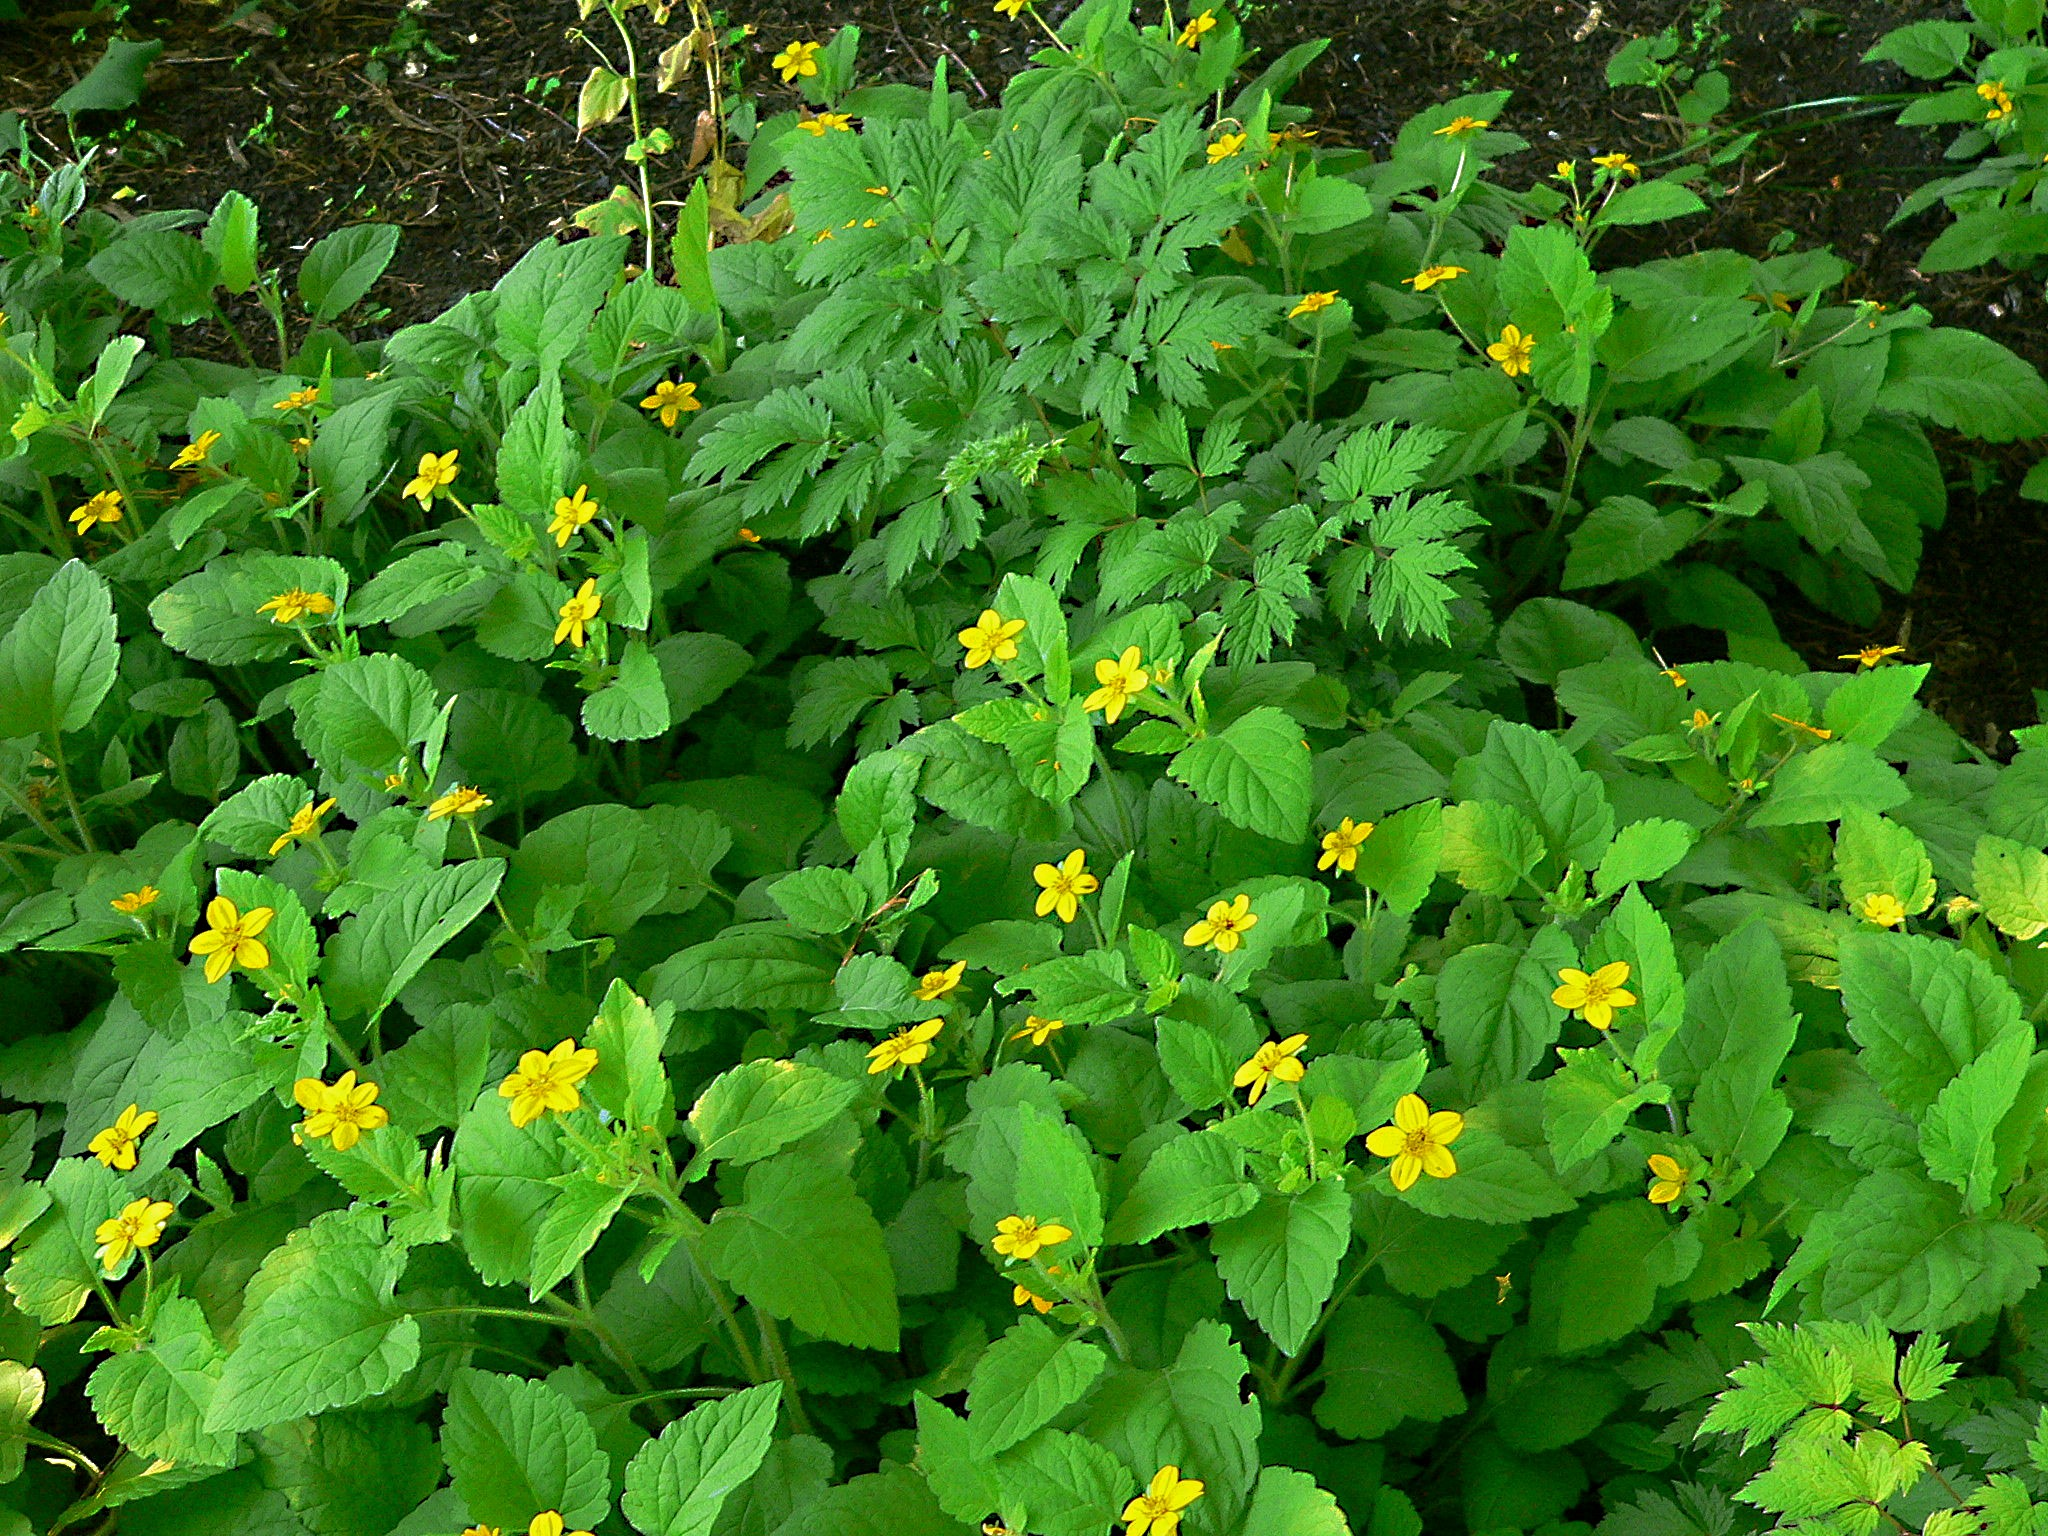 Flowers that like sun and moist soil - A Woodland Situation Is A Good Place To Grow This Plant Along With Foam Flower Bugbane And Ferns During Times Of Drought Particularly The First Couple Of